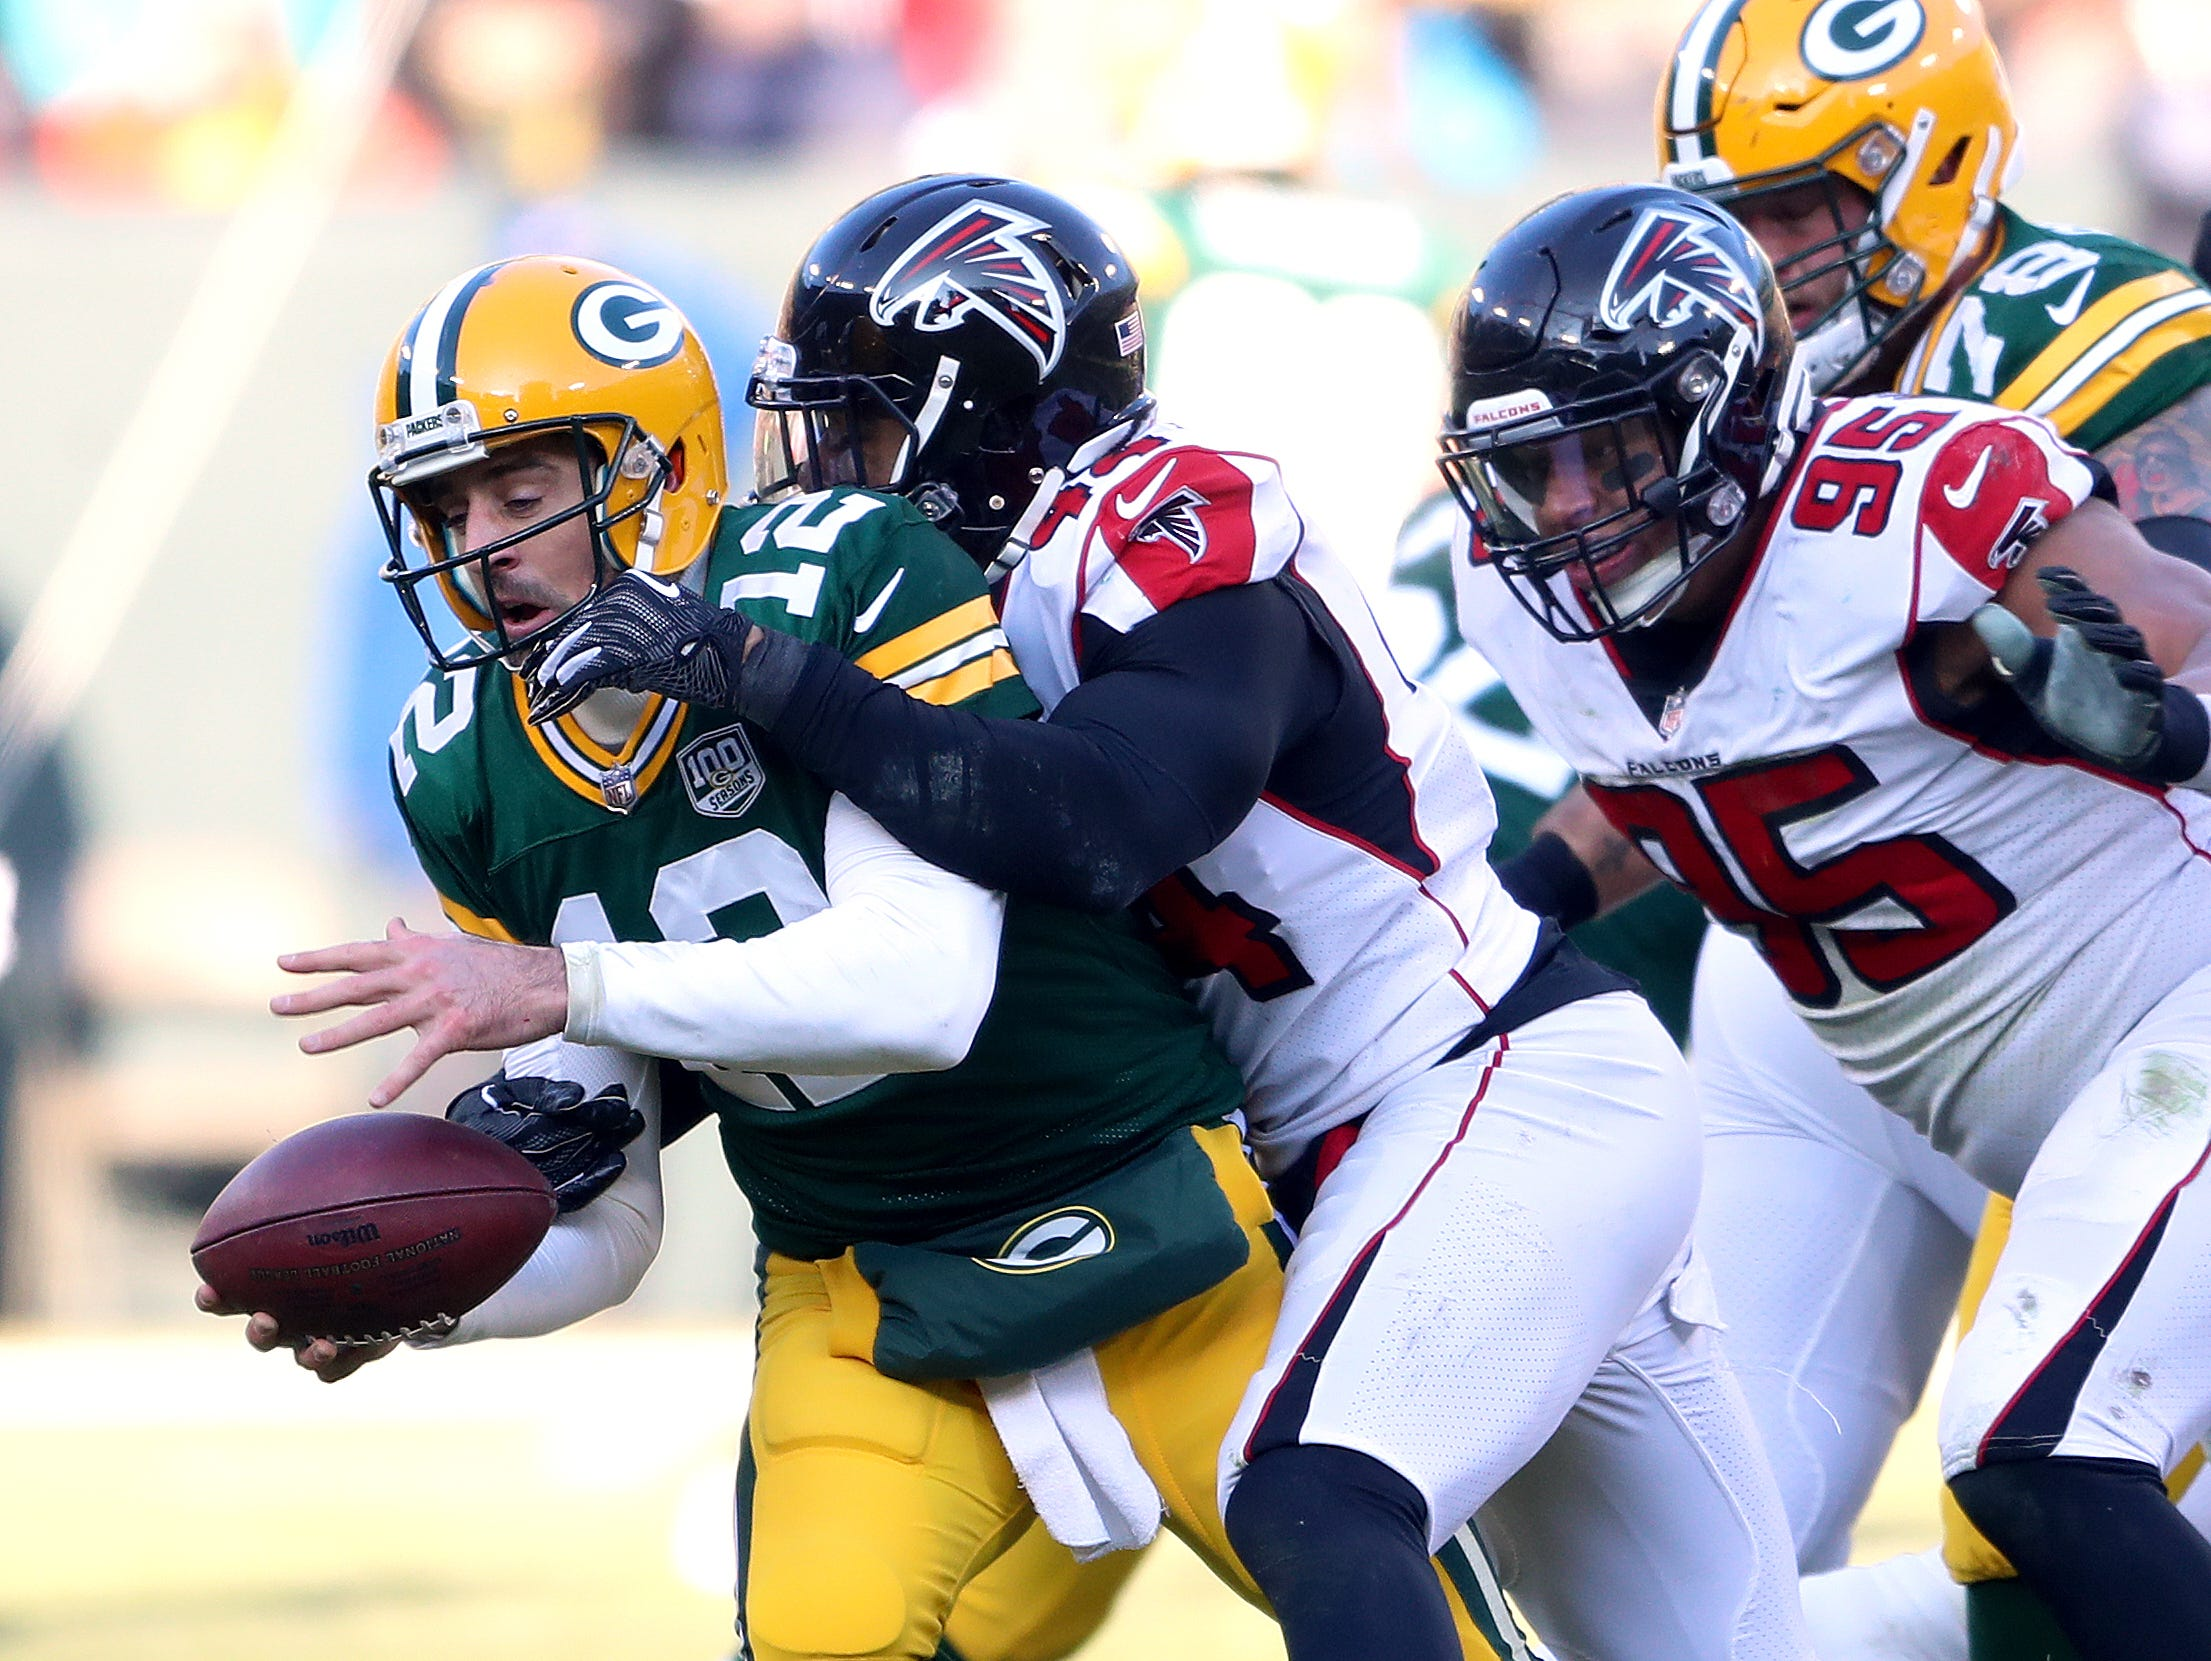 Green Bay Packers quarterback Aaron Rodgers (12) gets sacked by defensive end Vic Beasley (44) against the Atlanta Falcons Sunday, December 9, 2018 at Lambeau Field in Green Bay, Wis. Jim Matthews/USA TODAY NETWORK-Wis